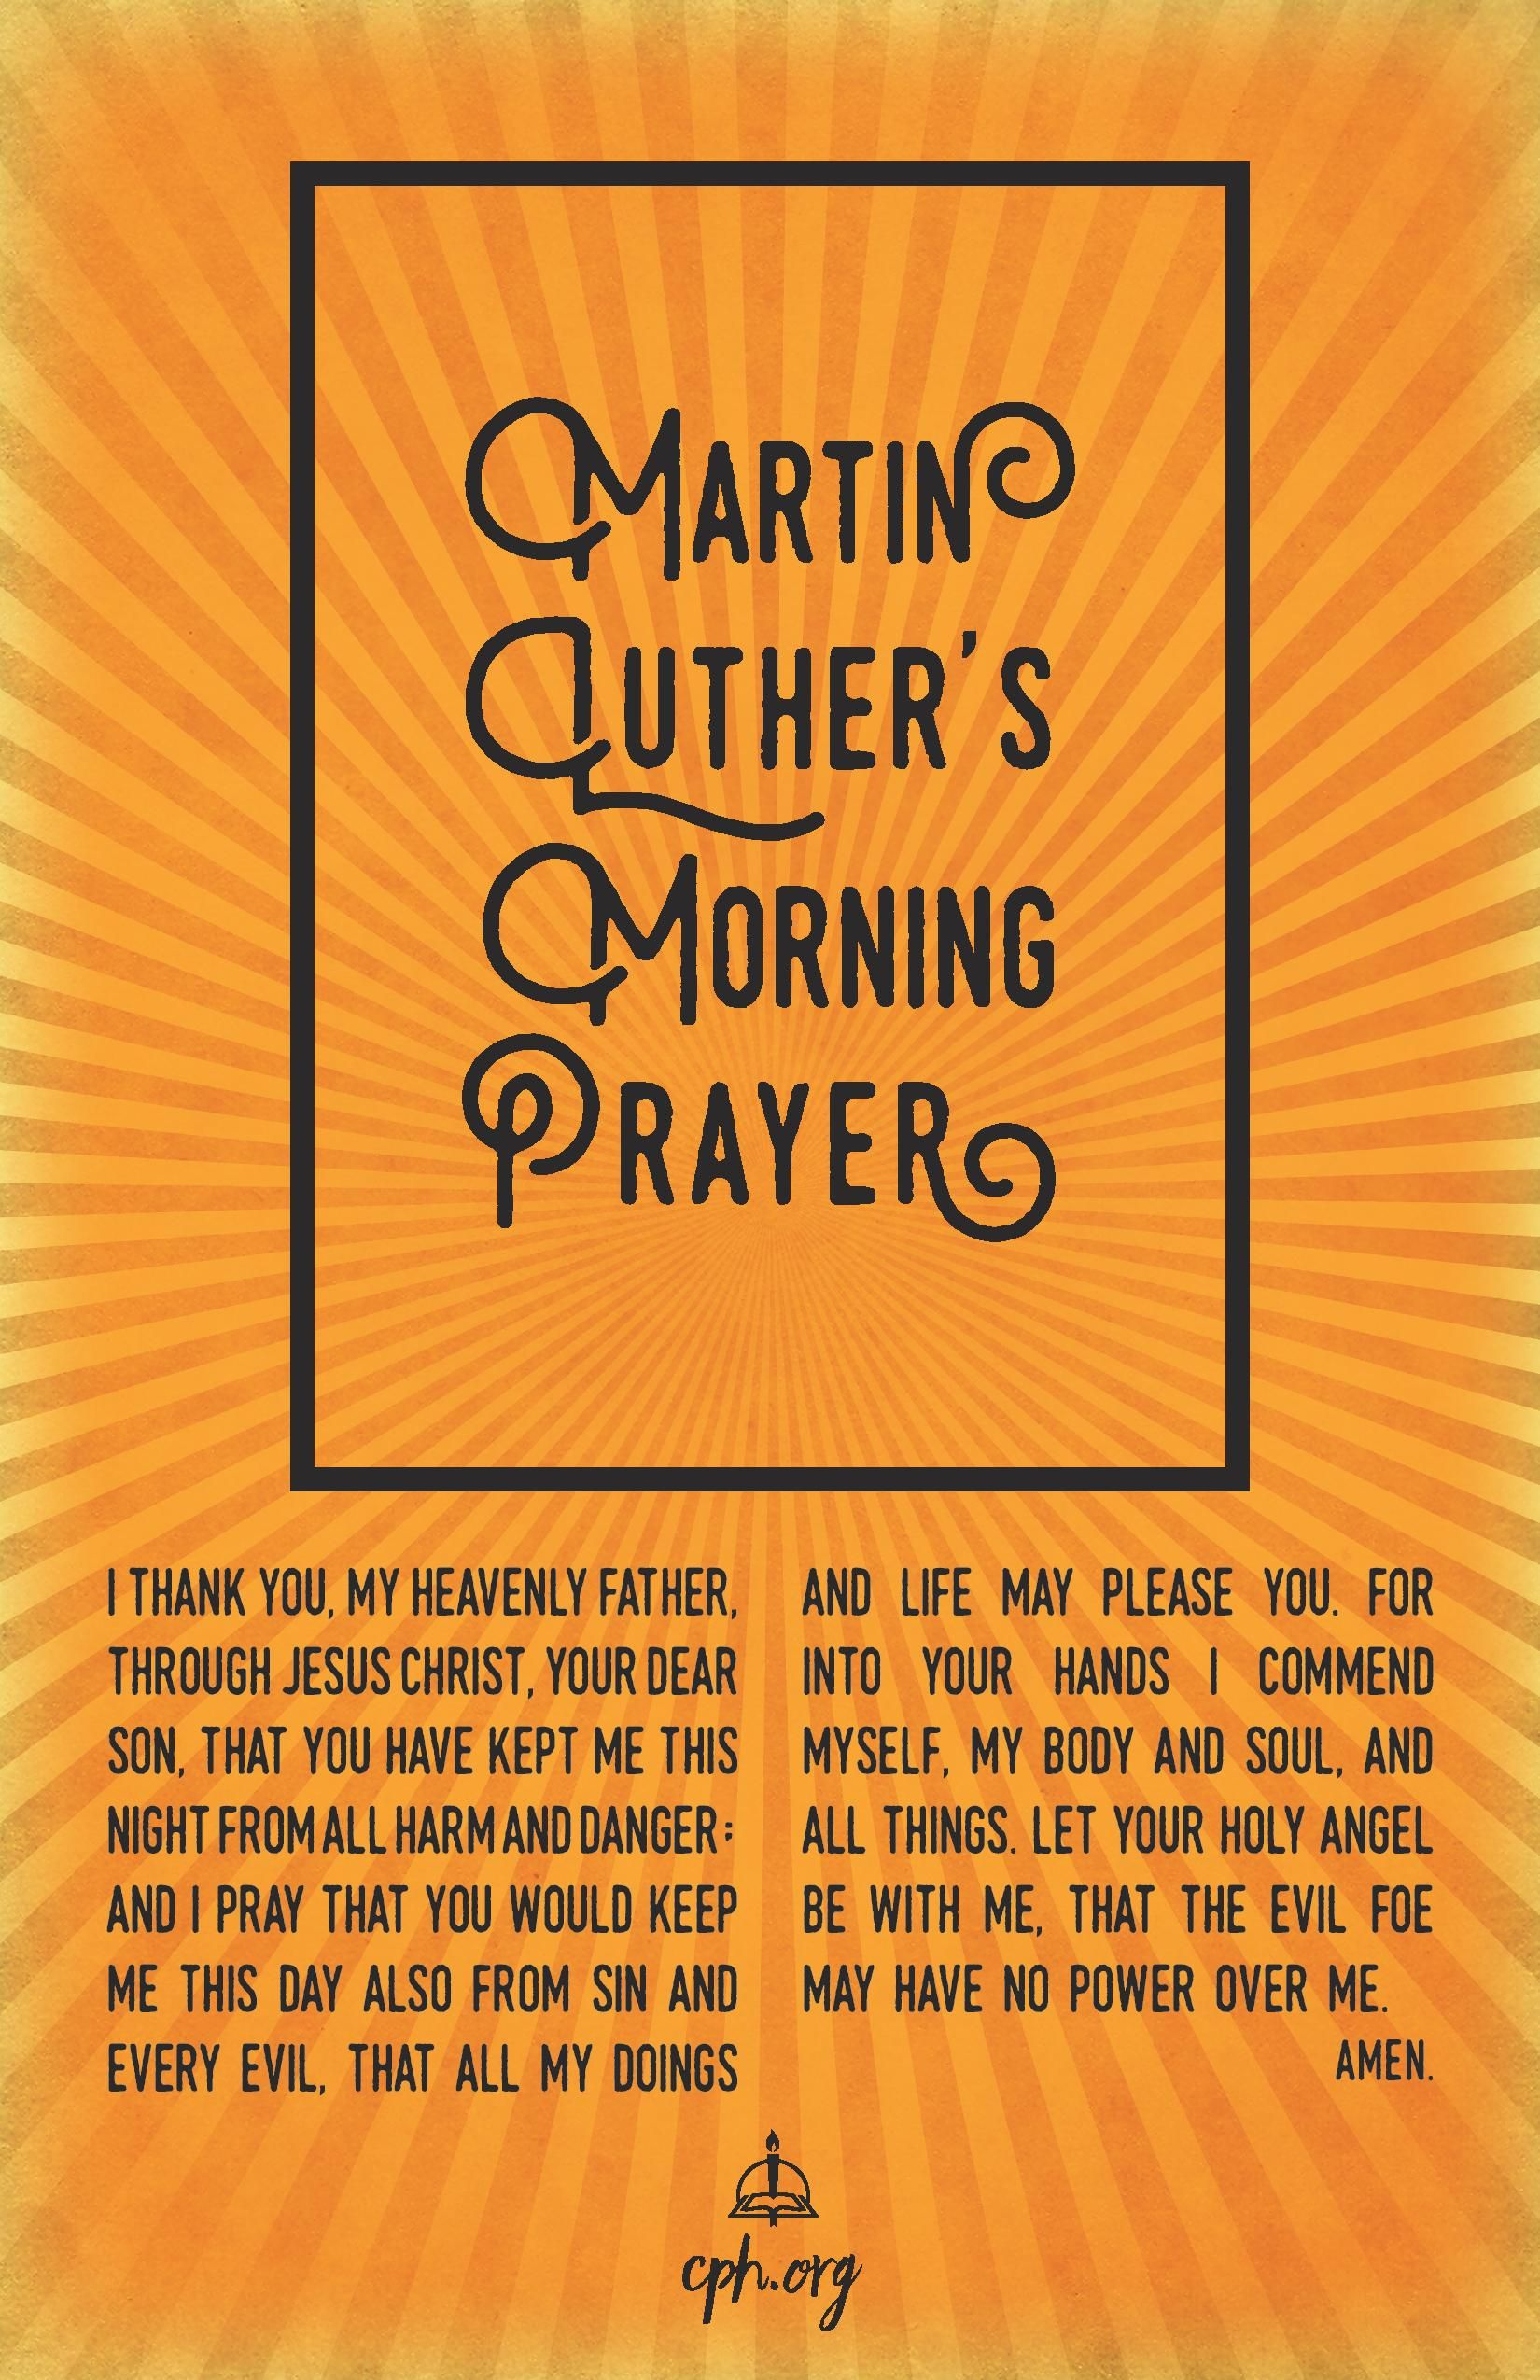 Luthers Morning Prayer Poster Download Help For Tired Christians